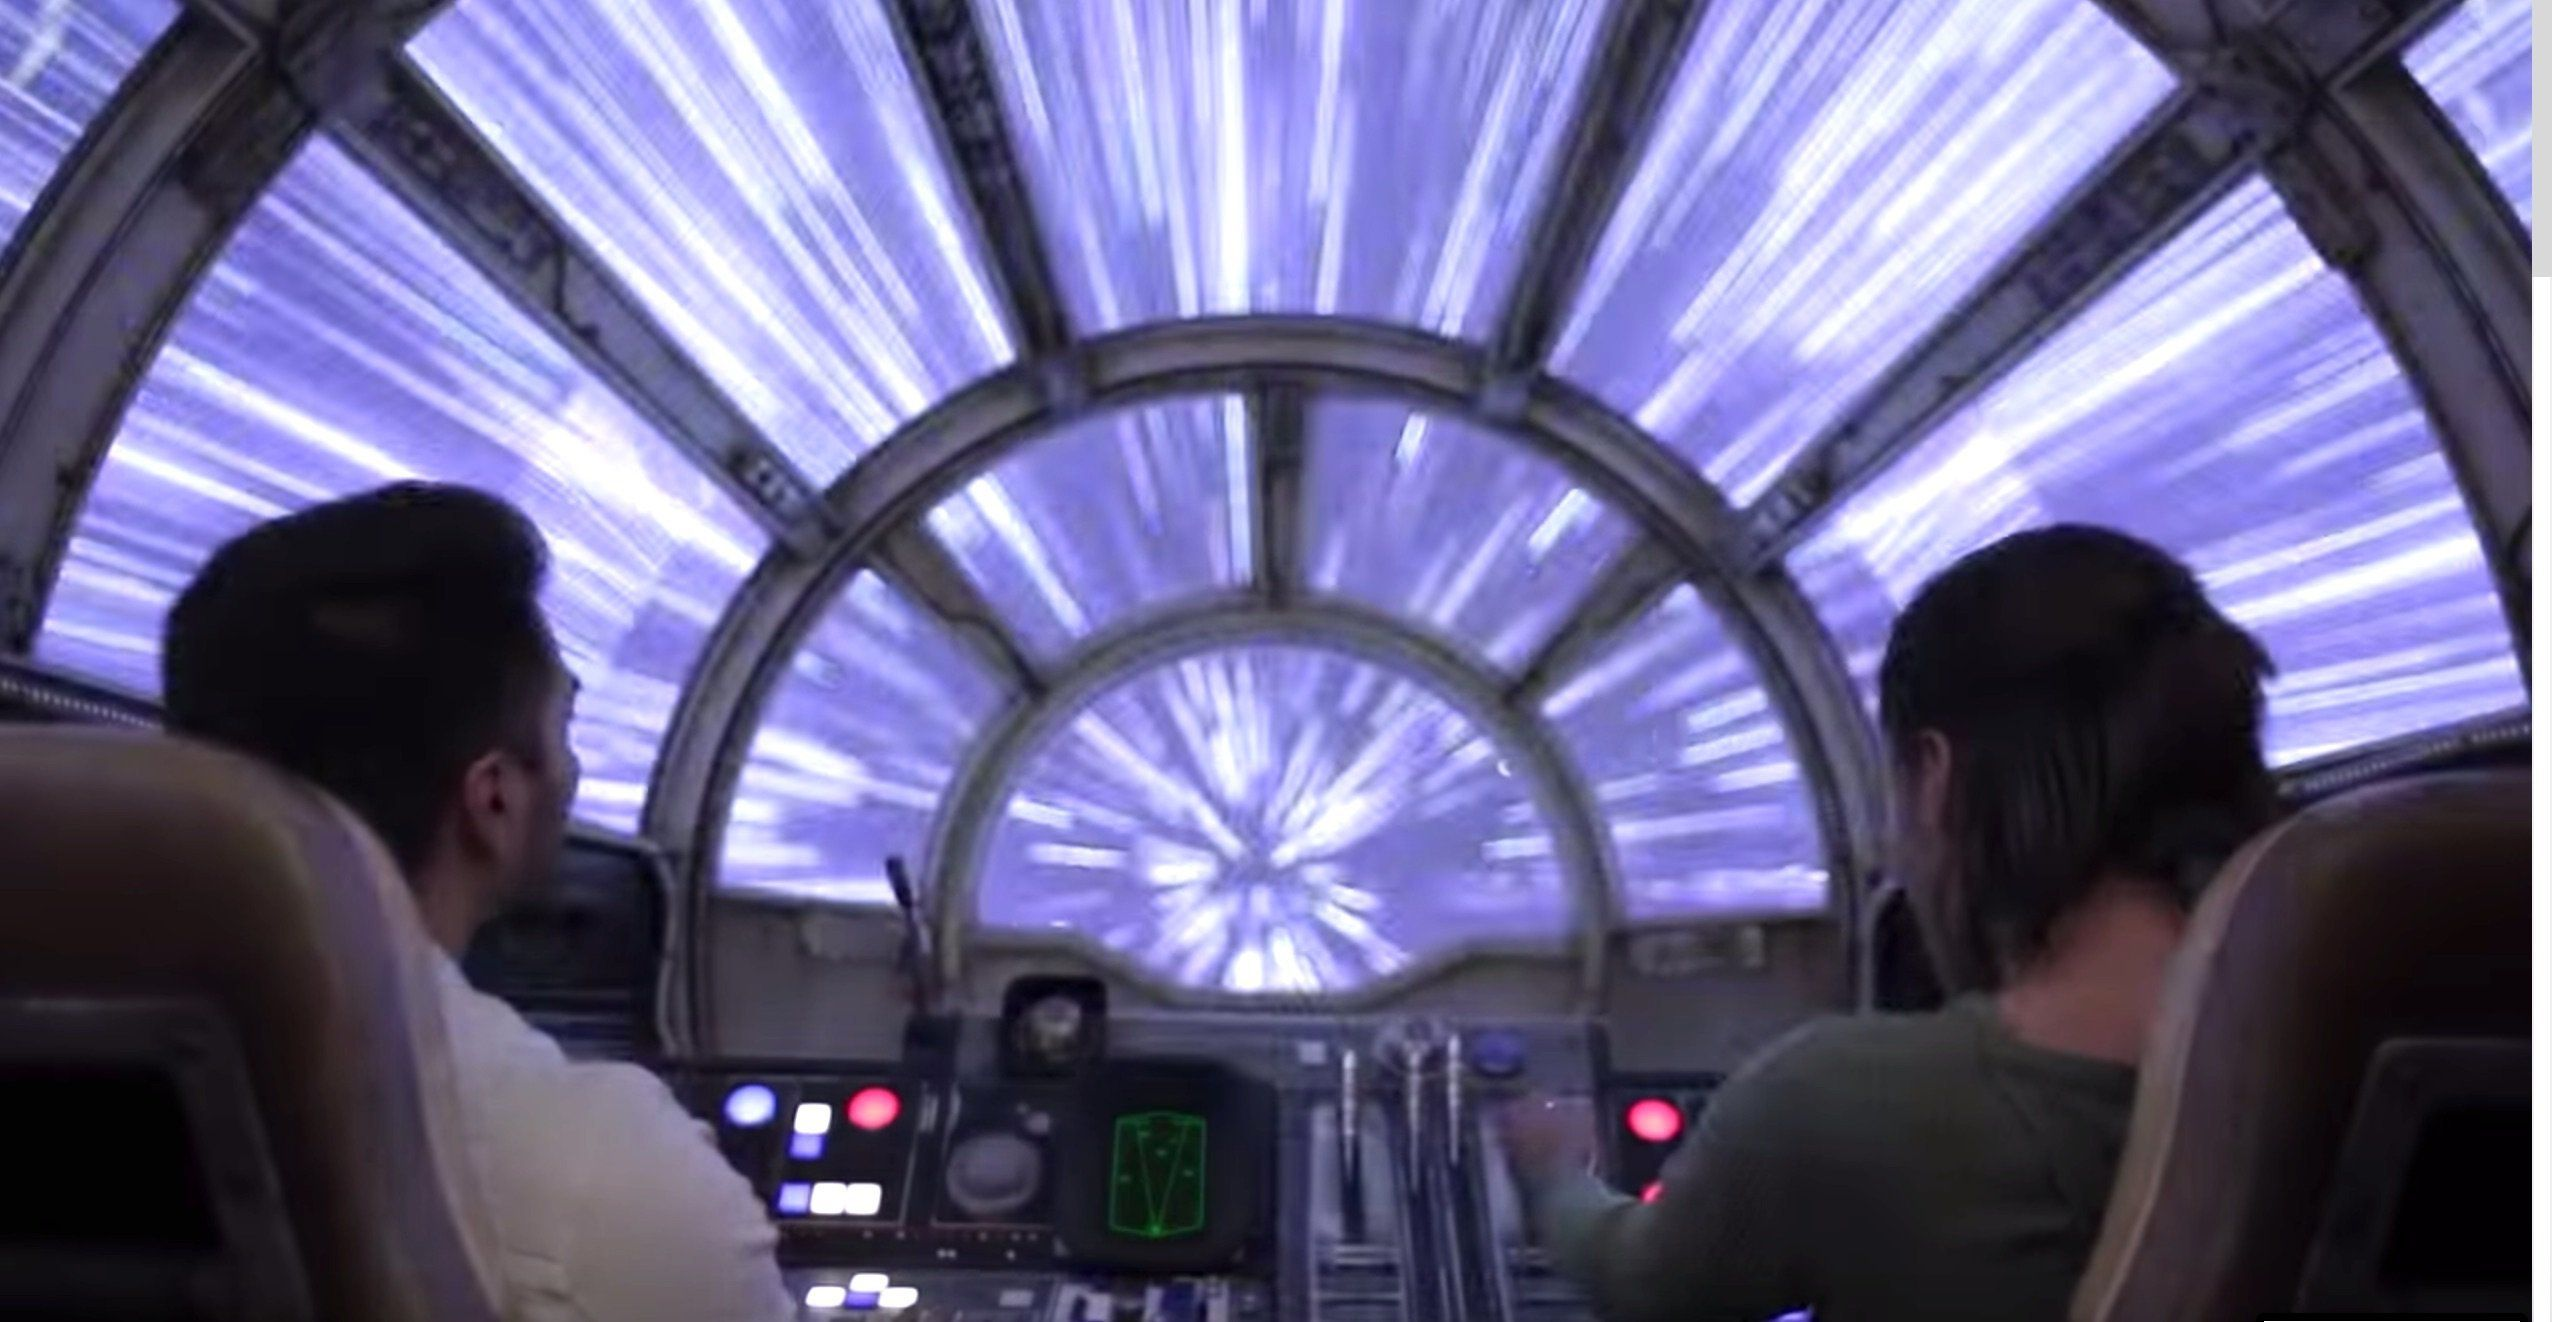 New Footage Gives Fans A Peek Inside Disney's Upcoming 'Star Wars'